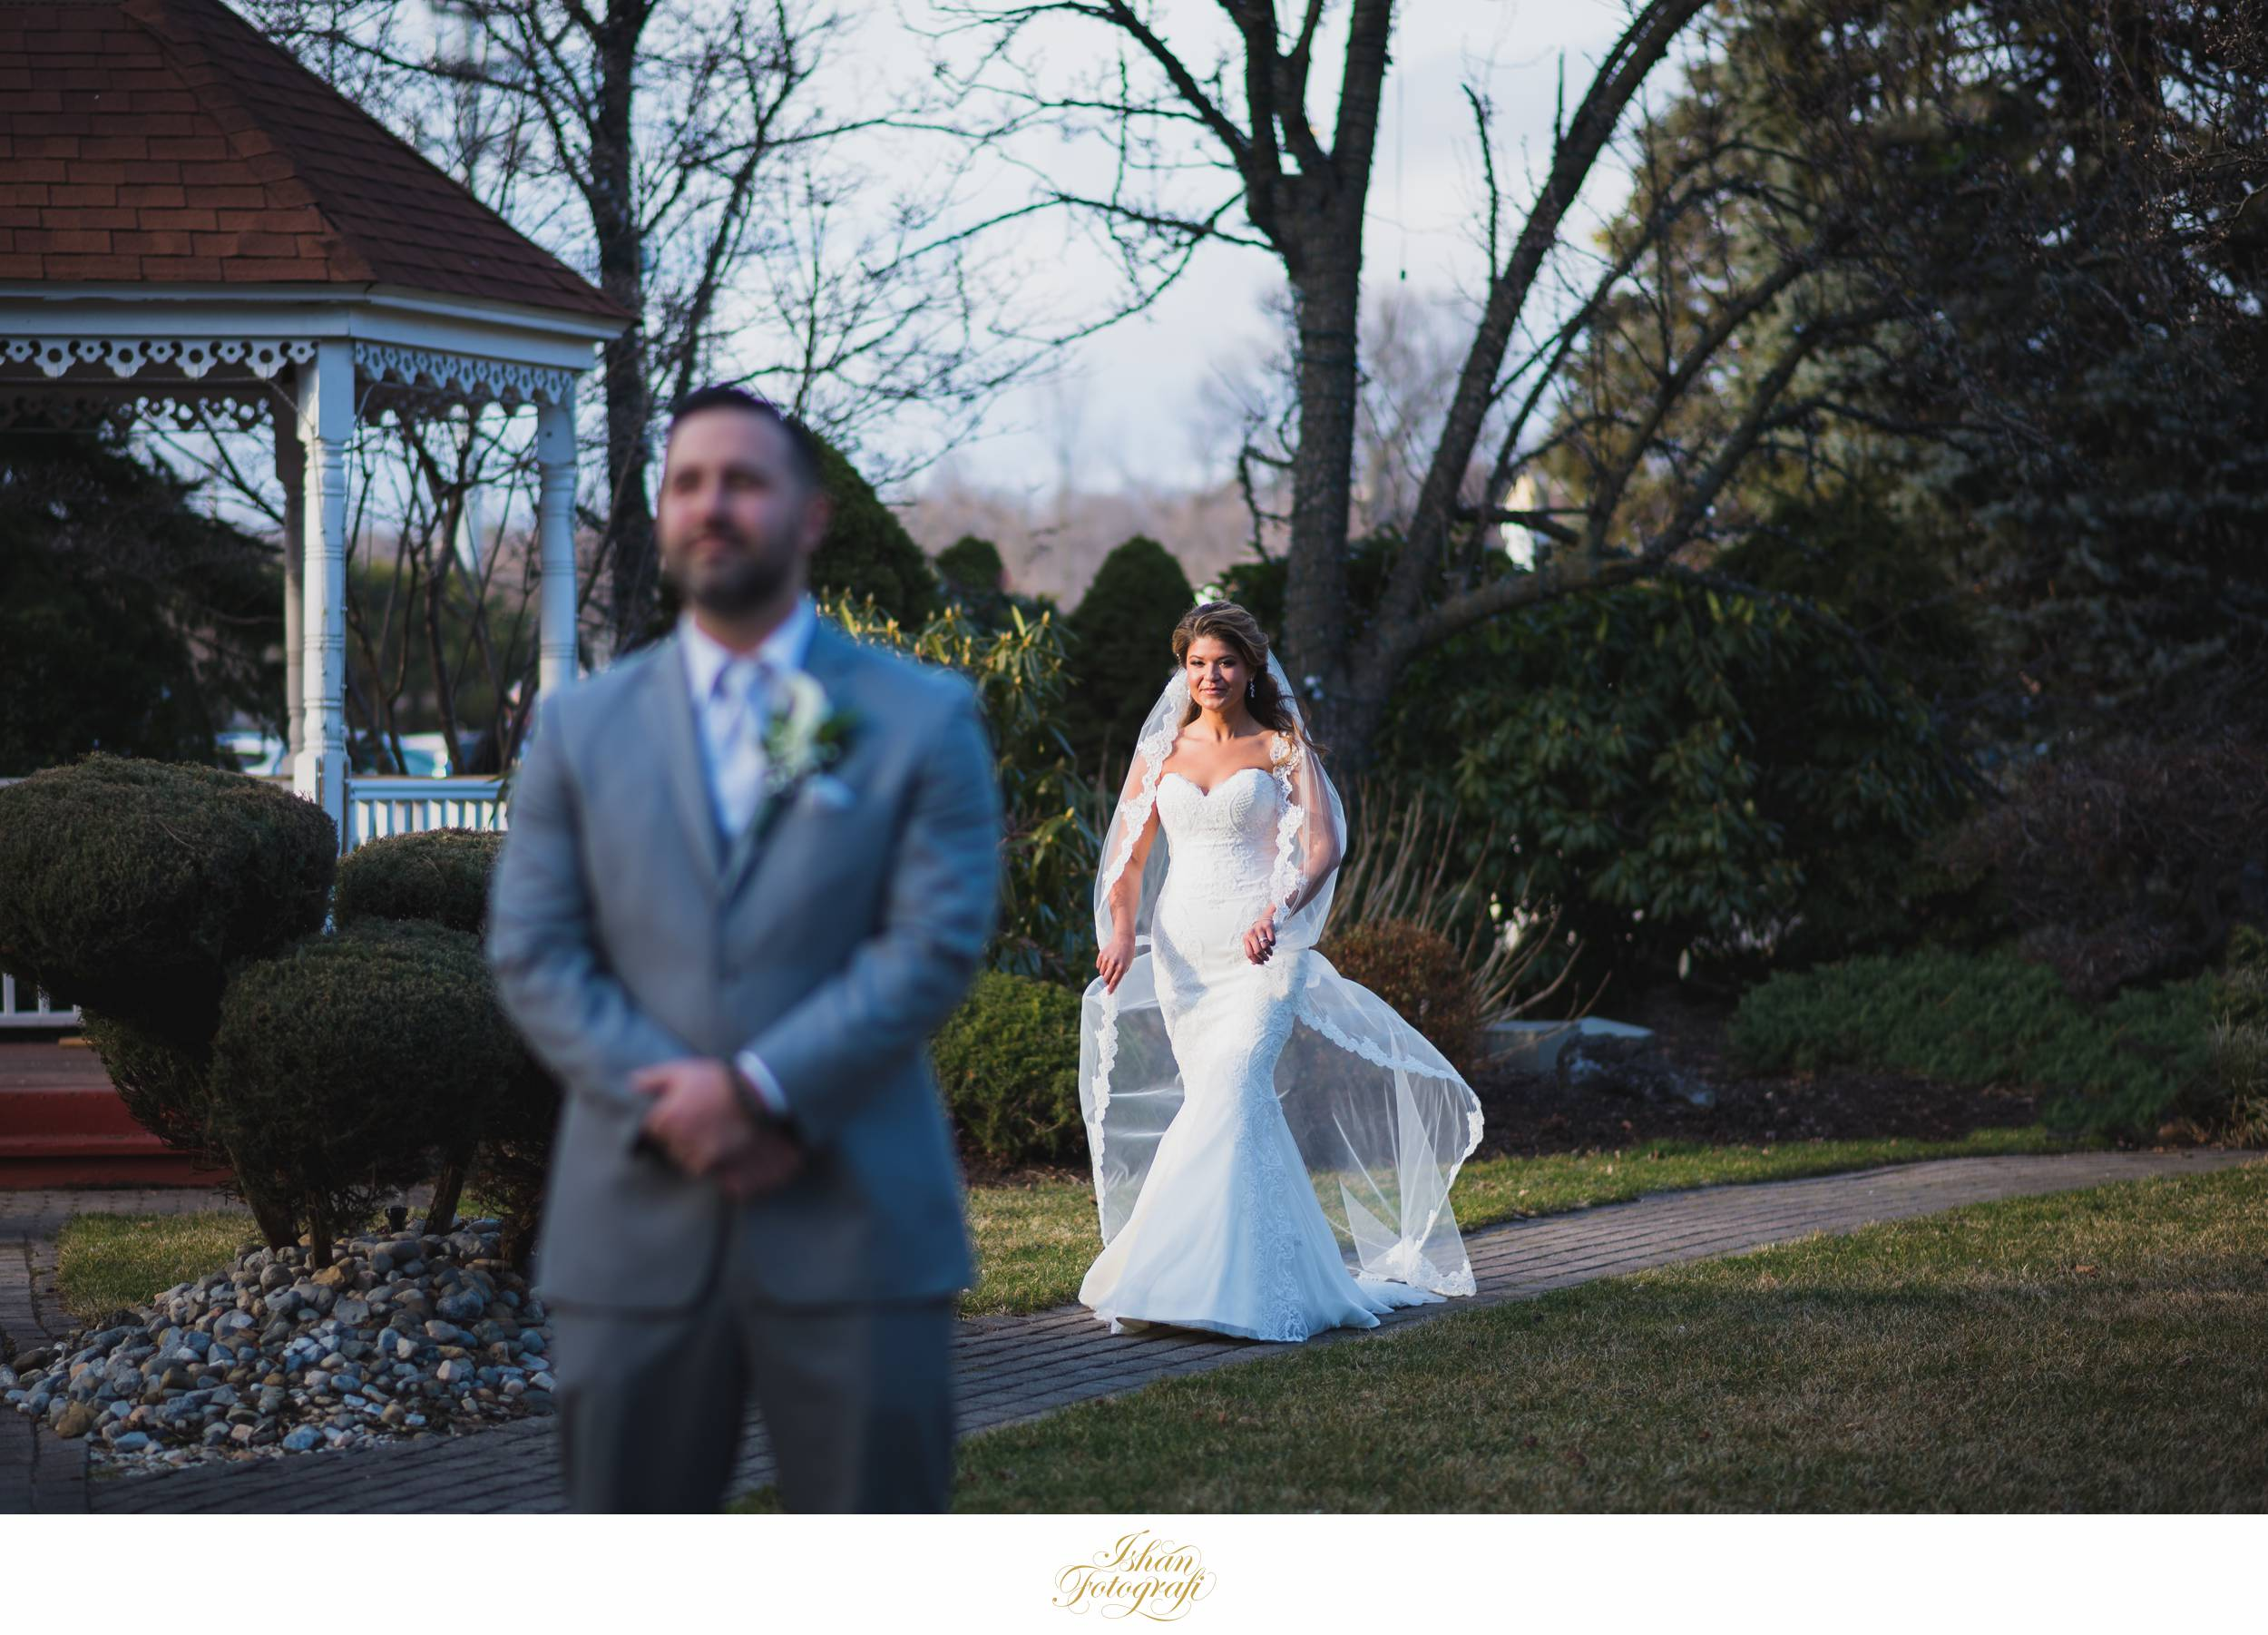 After our bride was ready, it was time for the first look! While she was walking towards the groom we caught her in this gorgeous winter light streaking through the bare trees. Winter weddings in New Jersey can be sometimes challenging but we love the low sun in the sky; it creates such soft light late in the afternoon. As a NJ wedding photographer we love finding and taking advantage of quality light!